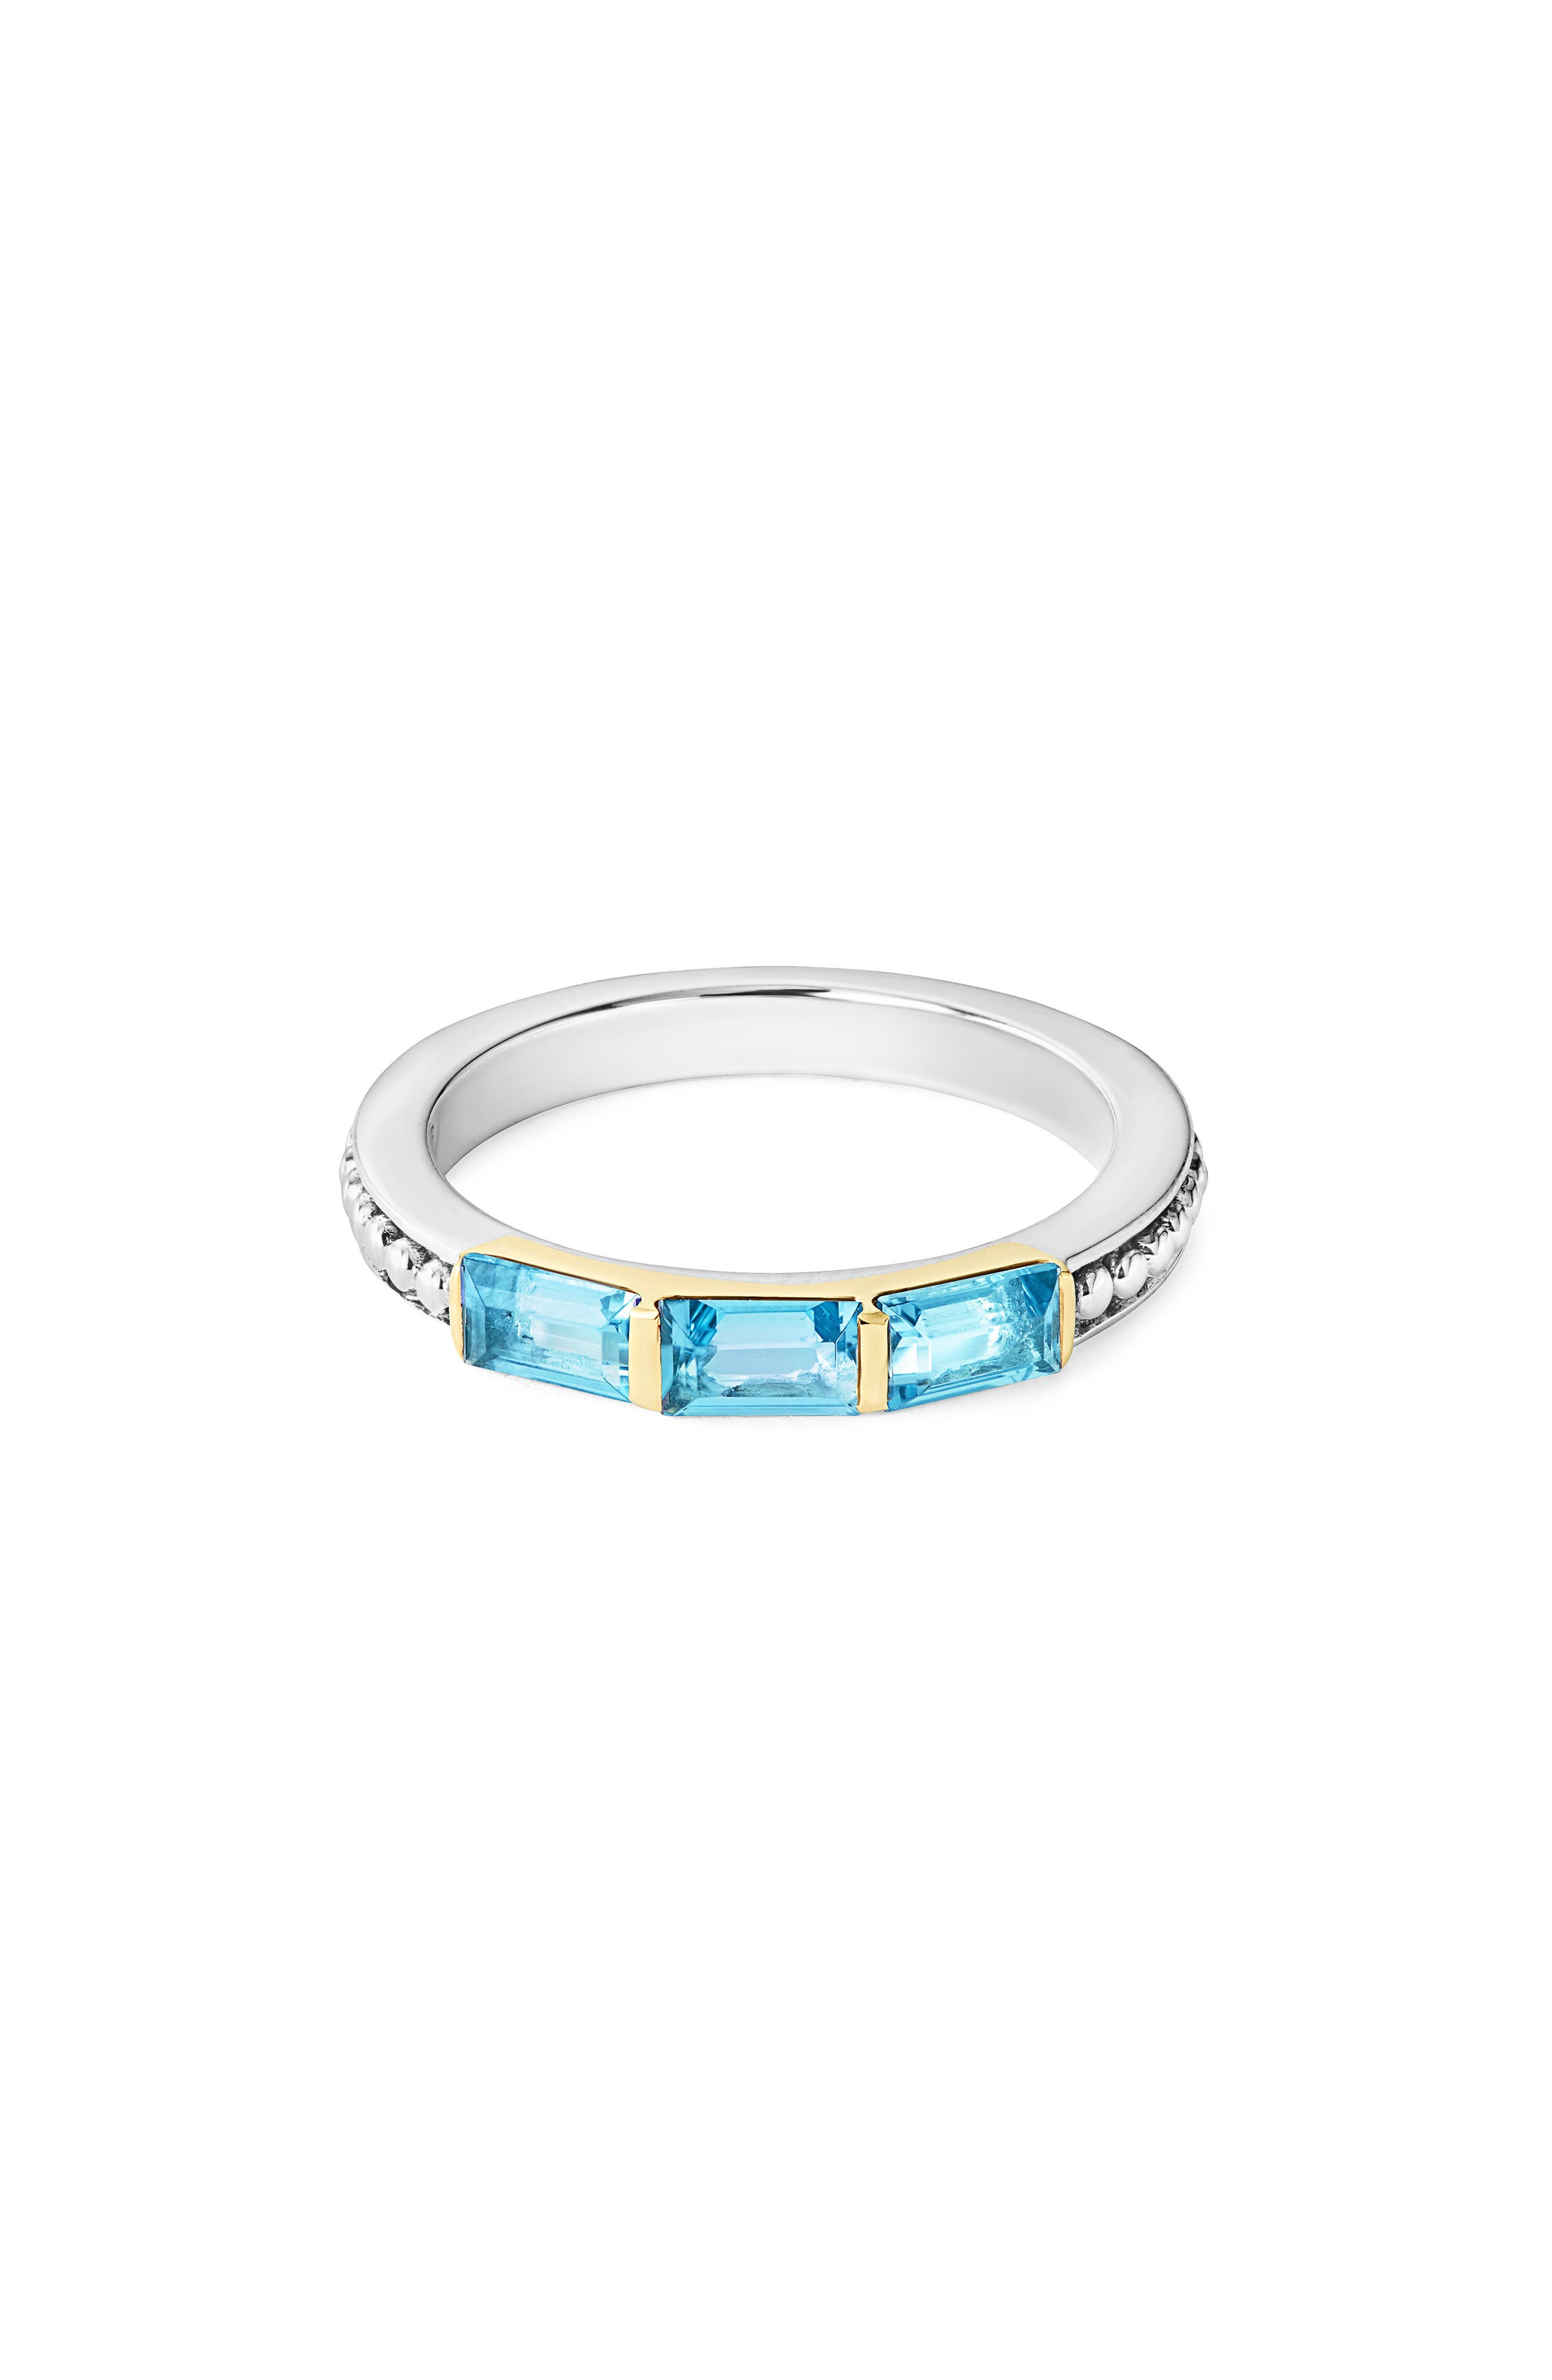 Gemstone Baguette Stackable Ring,                             Main thumbnail 1, color,                             Silver/ 18K Gold/ Blue Topaz